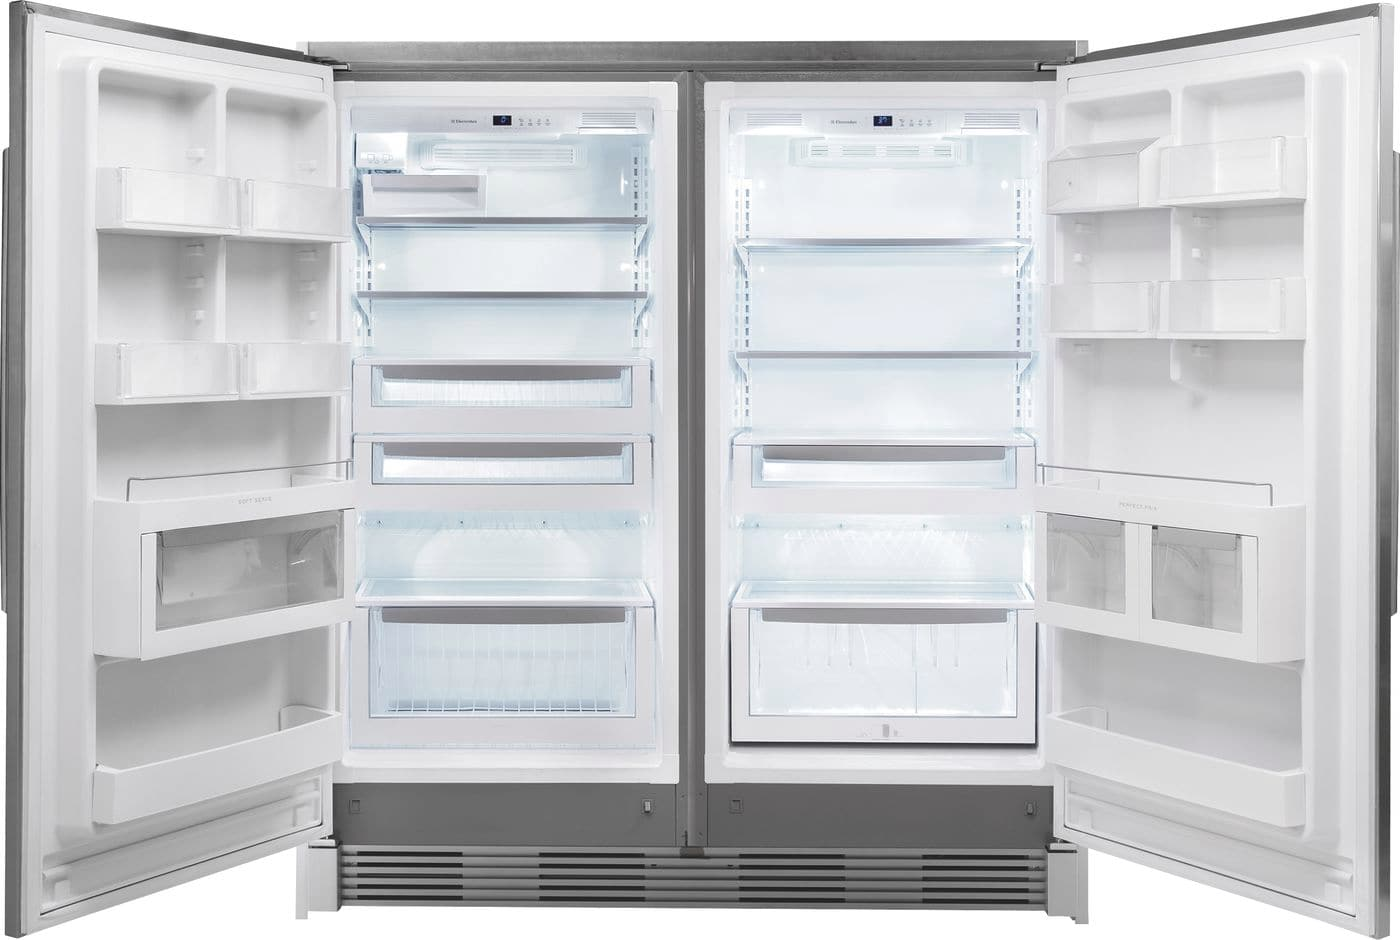 Model: EI32AR80QS | Electrolux All Refrigerator with IQ-Touch™ Controls